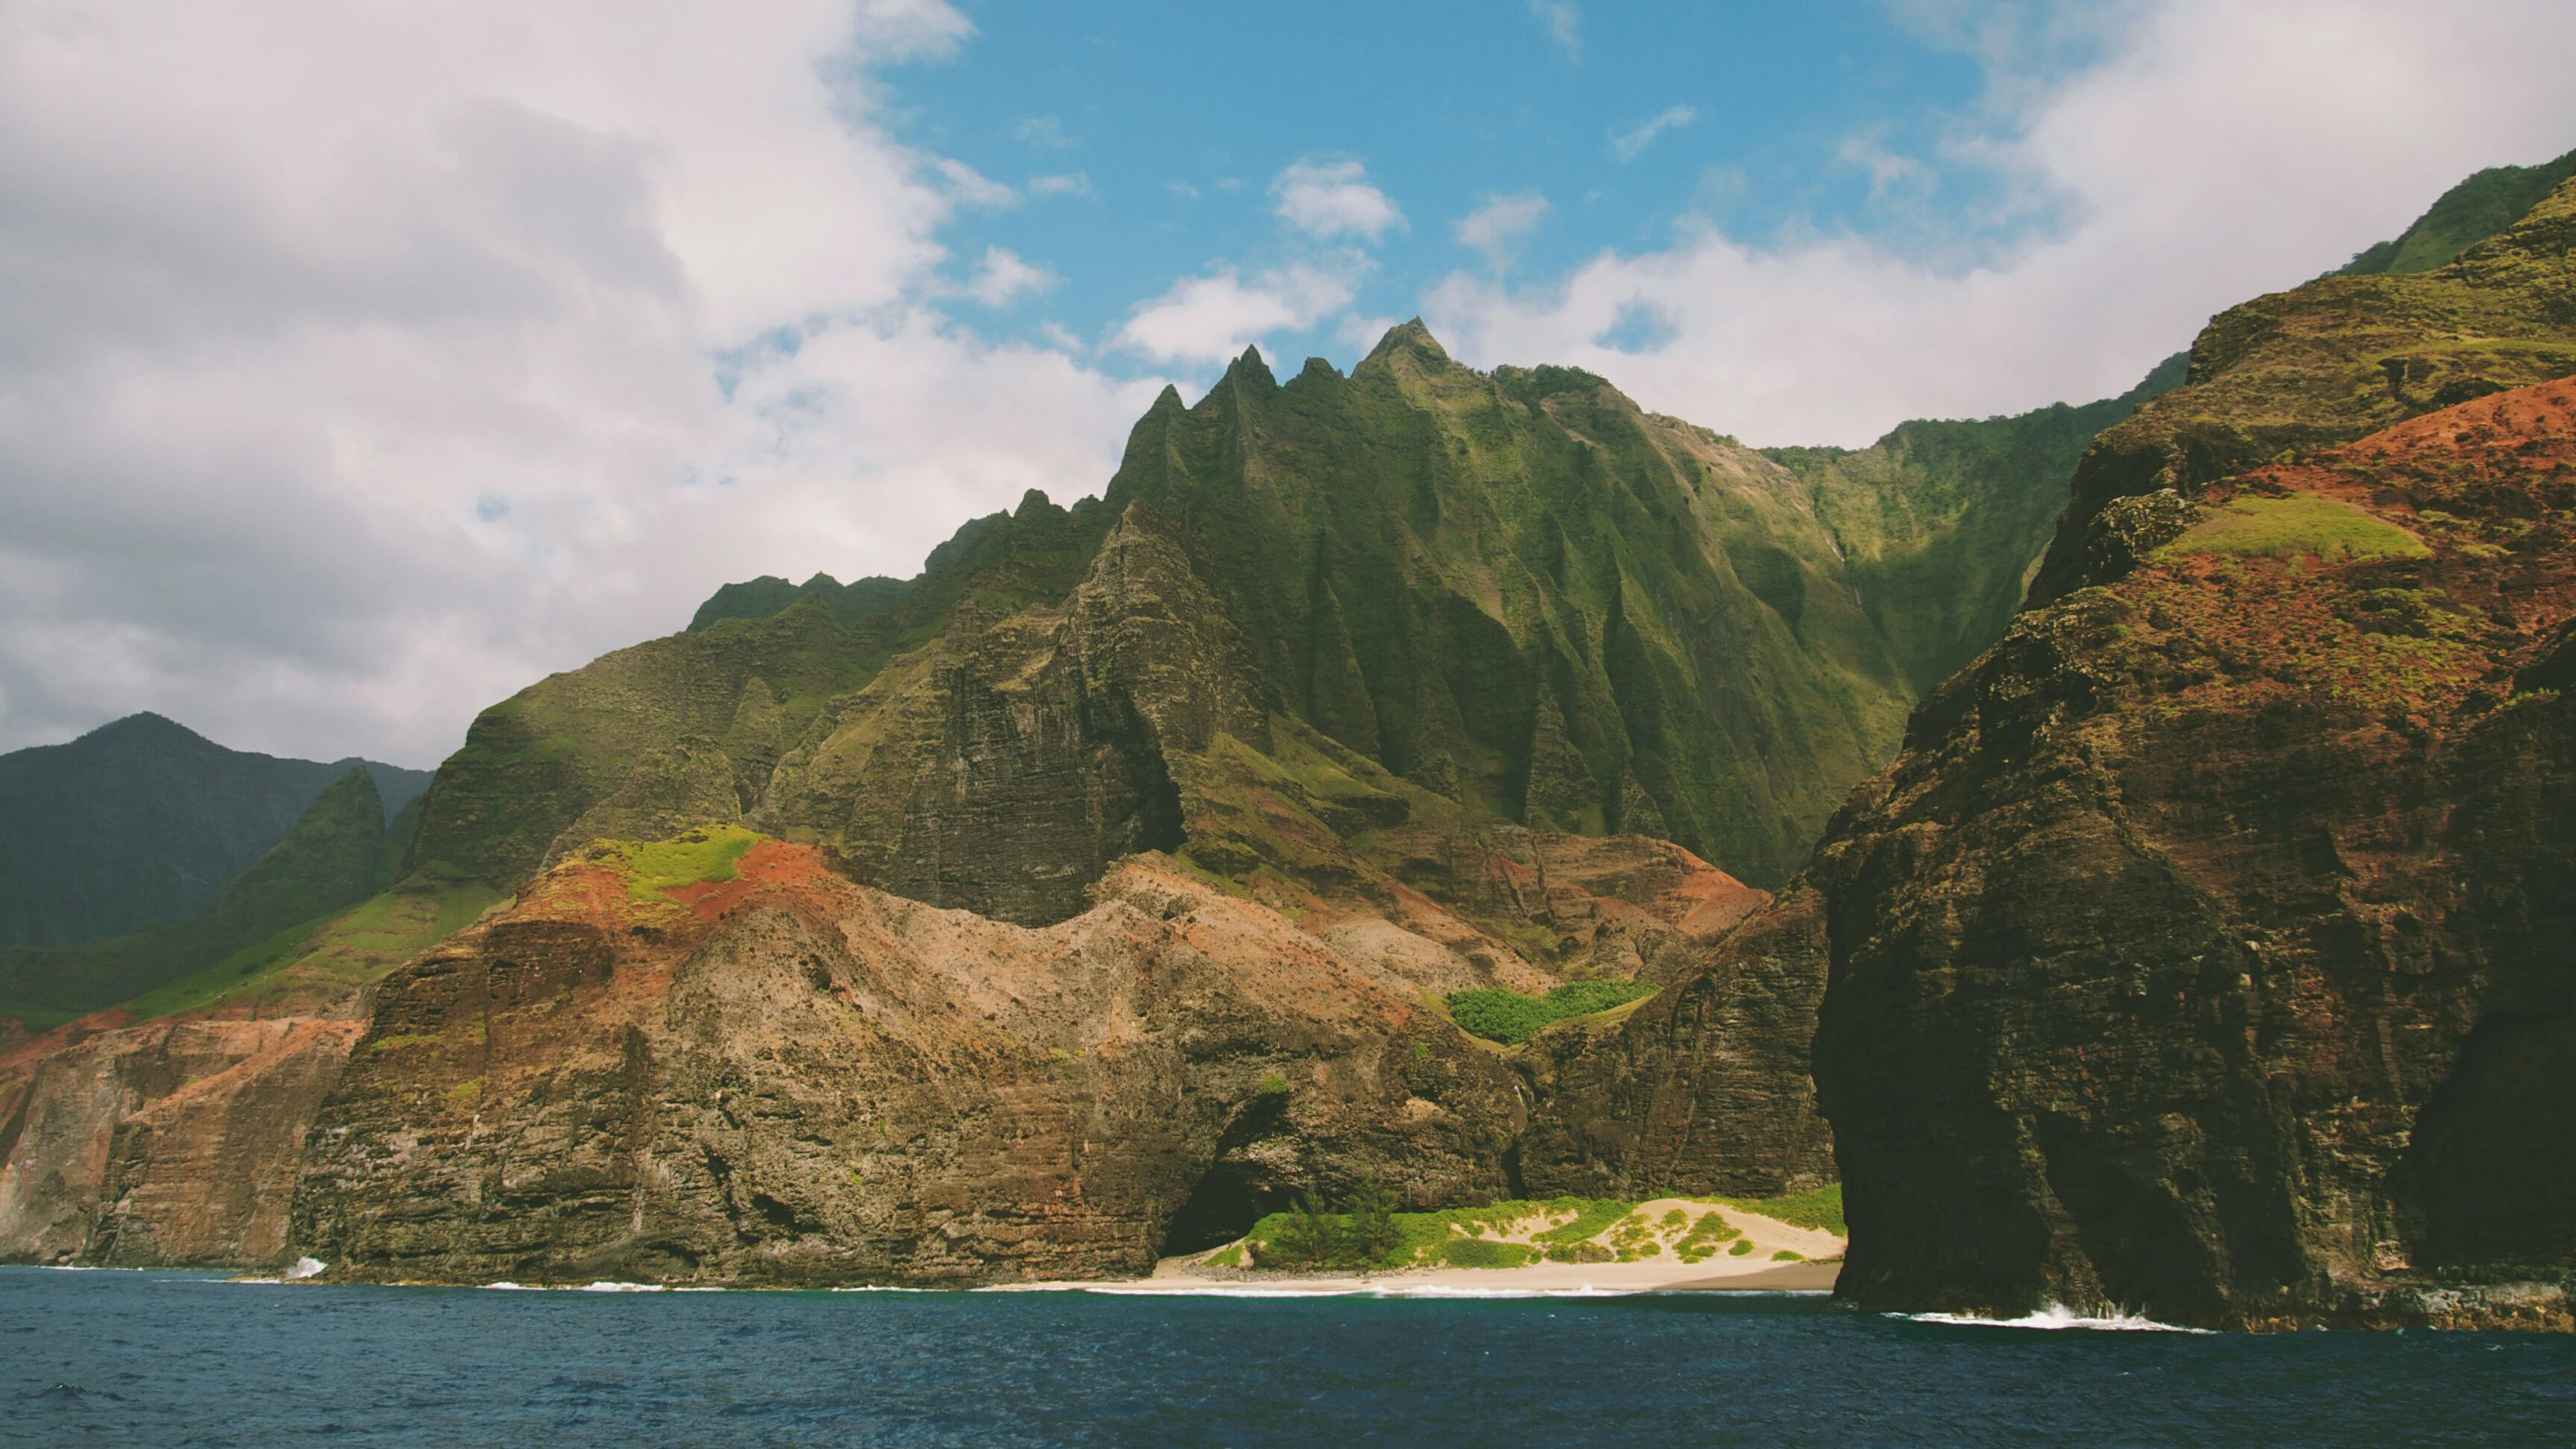 Scenic view of humongous mountain and beach just off the coast of the ocean